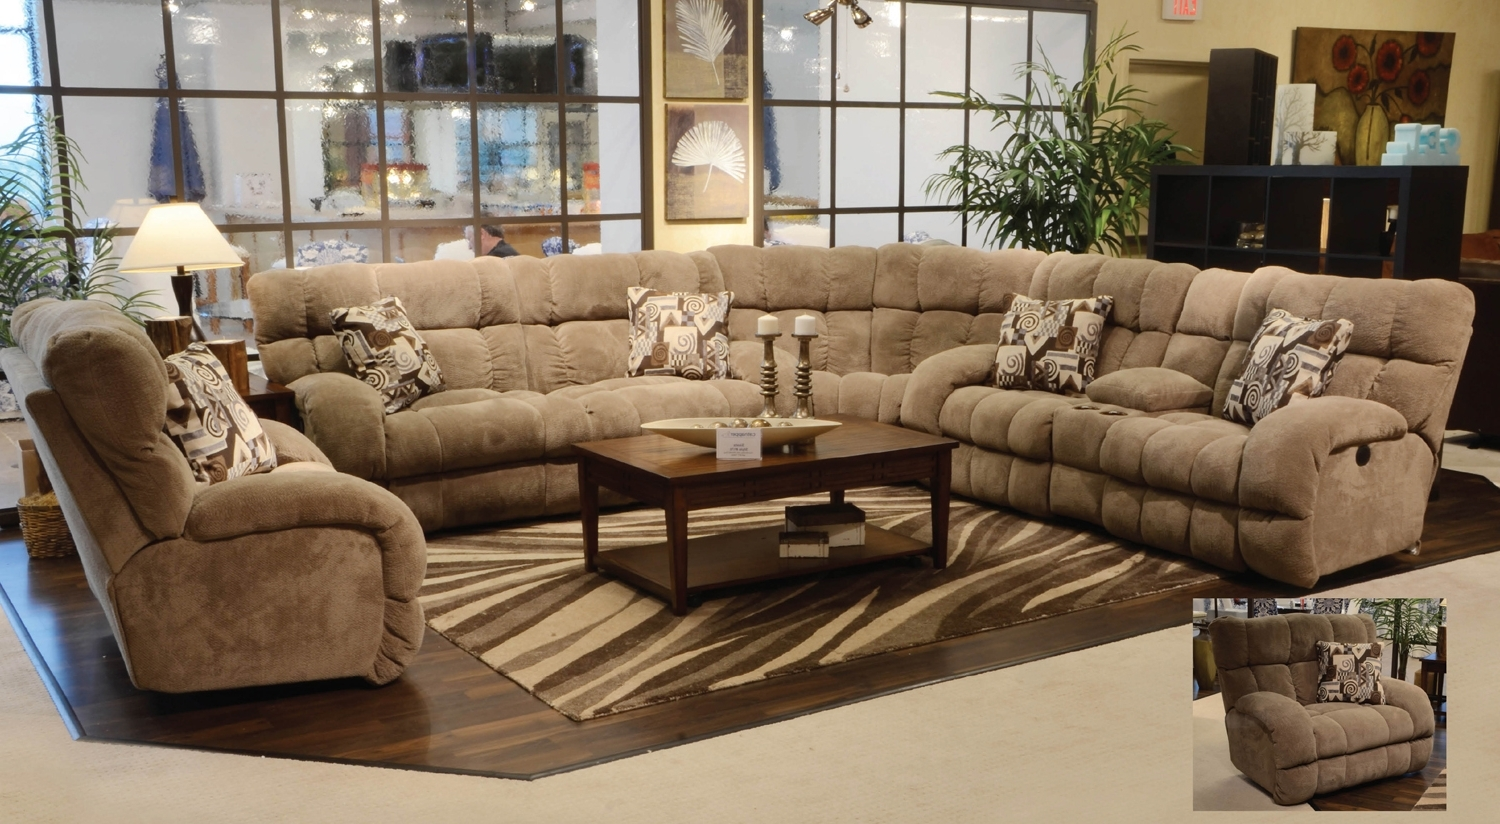 Newest Deep Sectional Sofas With Chaise Intended For Sofa ~ Comfy Deep Couches And Sofas Deep Cushion Sectional Sofa (View 11 of 15)